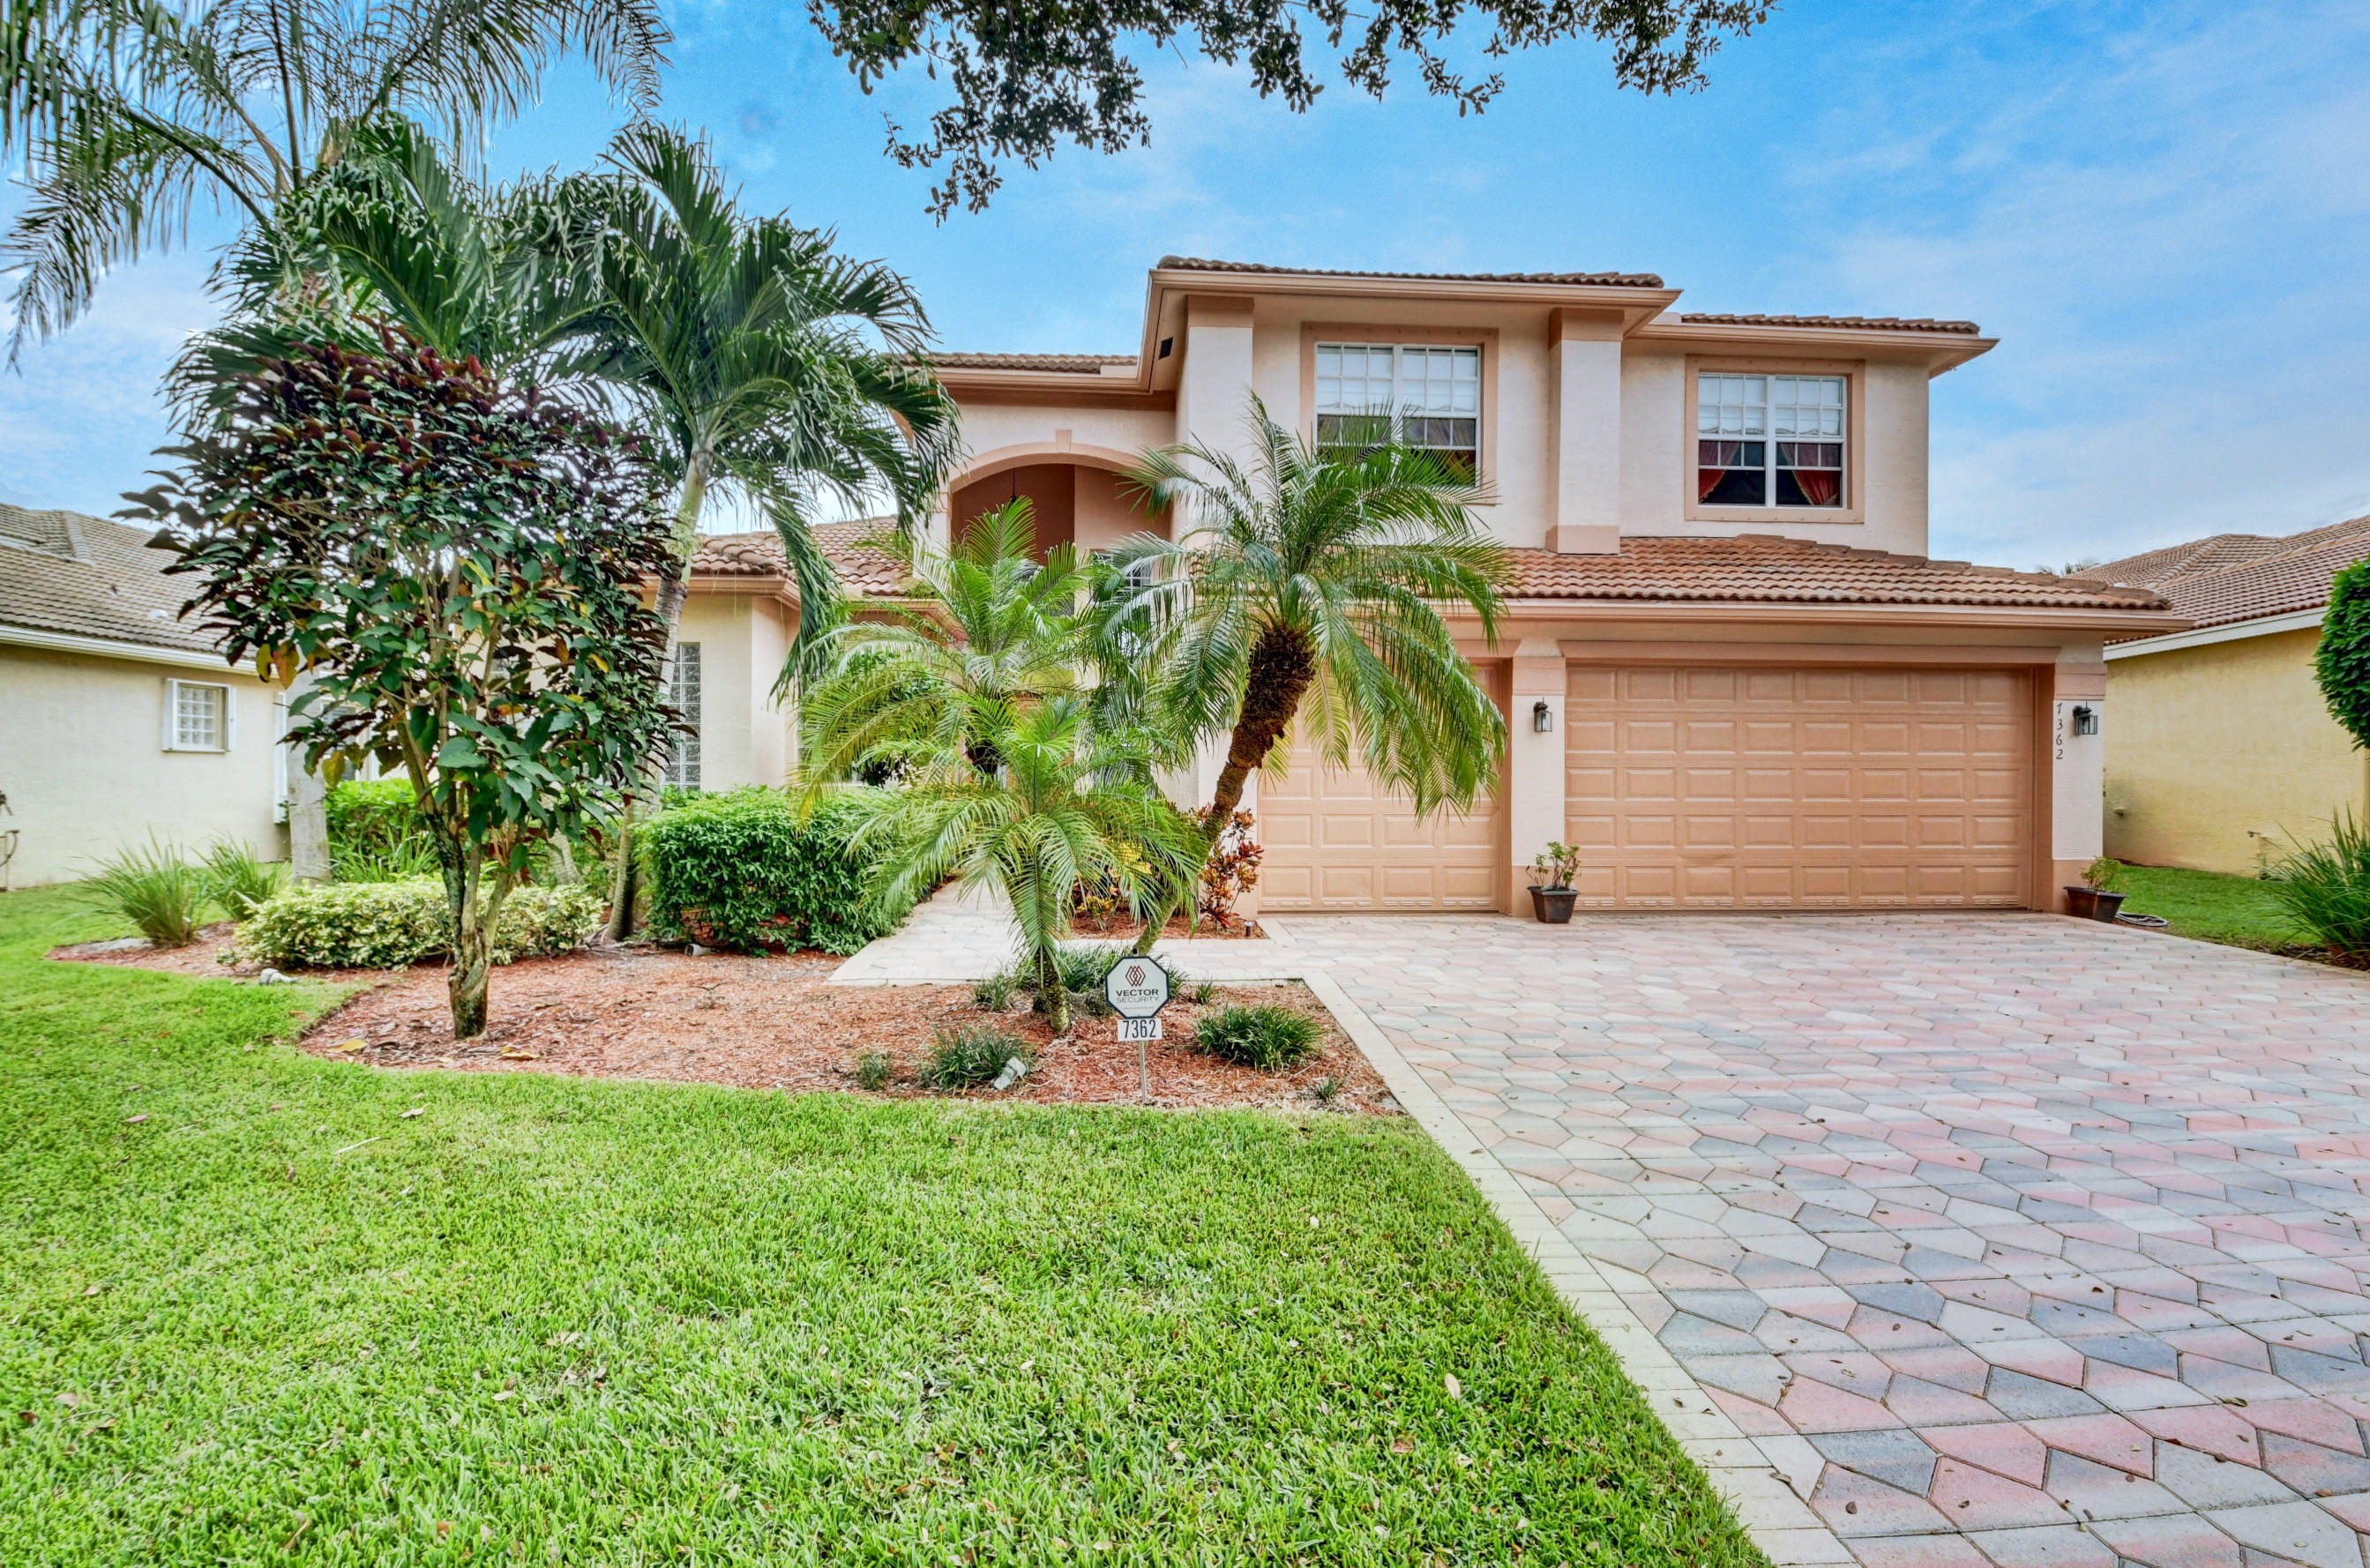 Photo of 7362 Greenport Cove, Boynton Beach, FL 33437